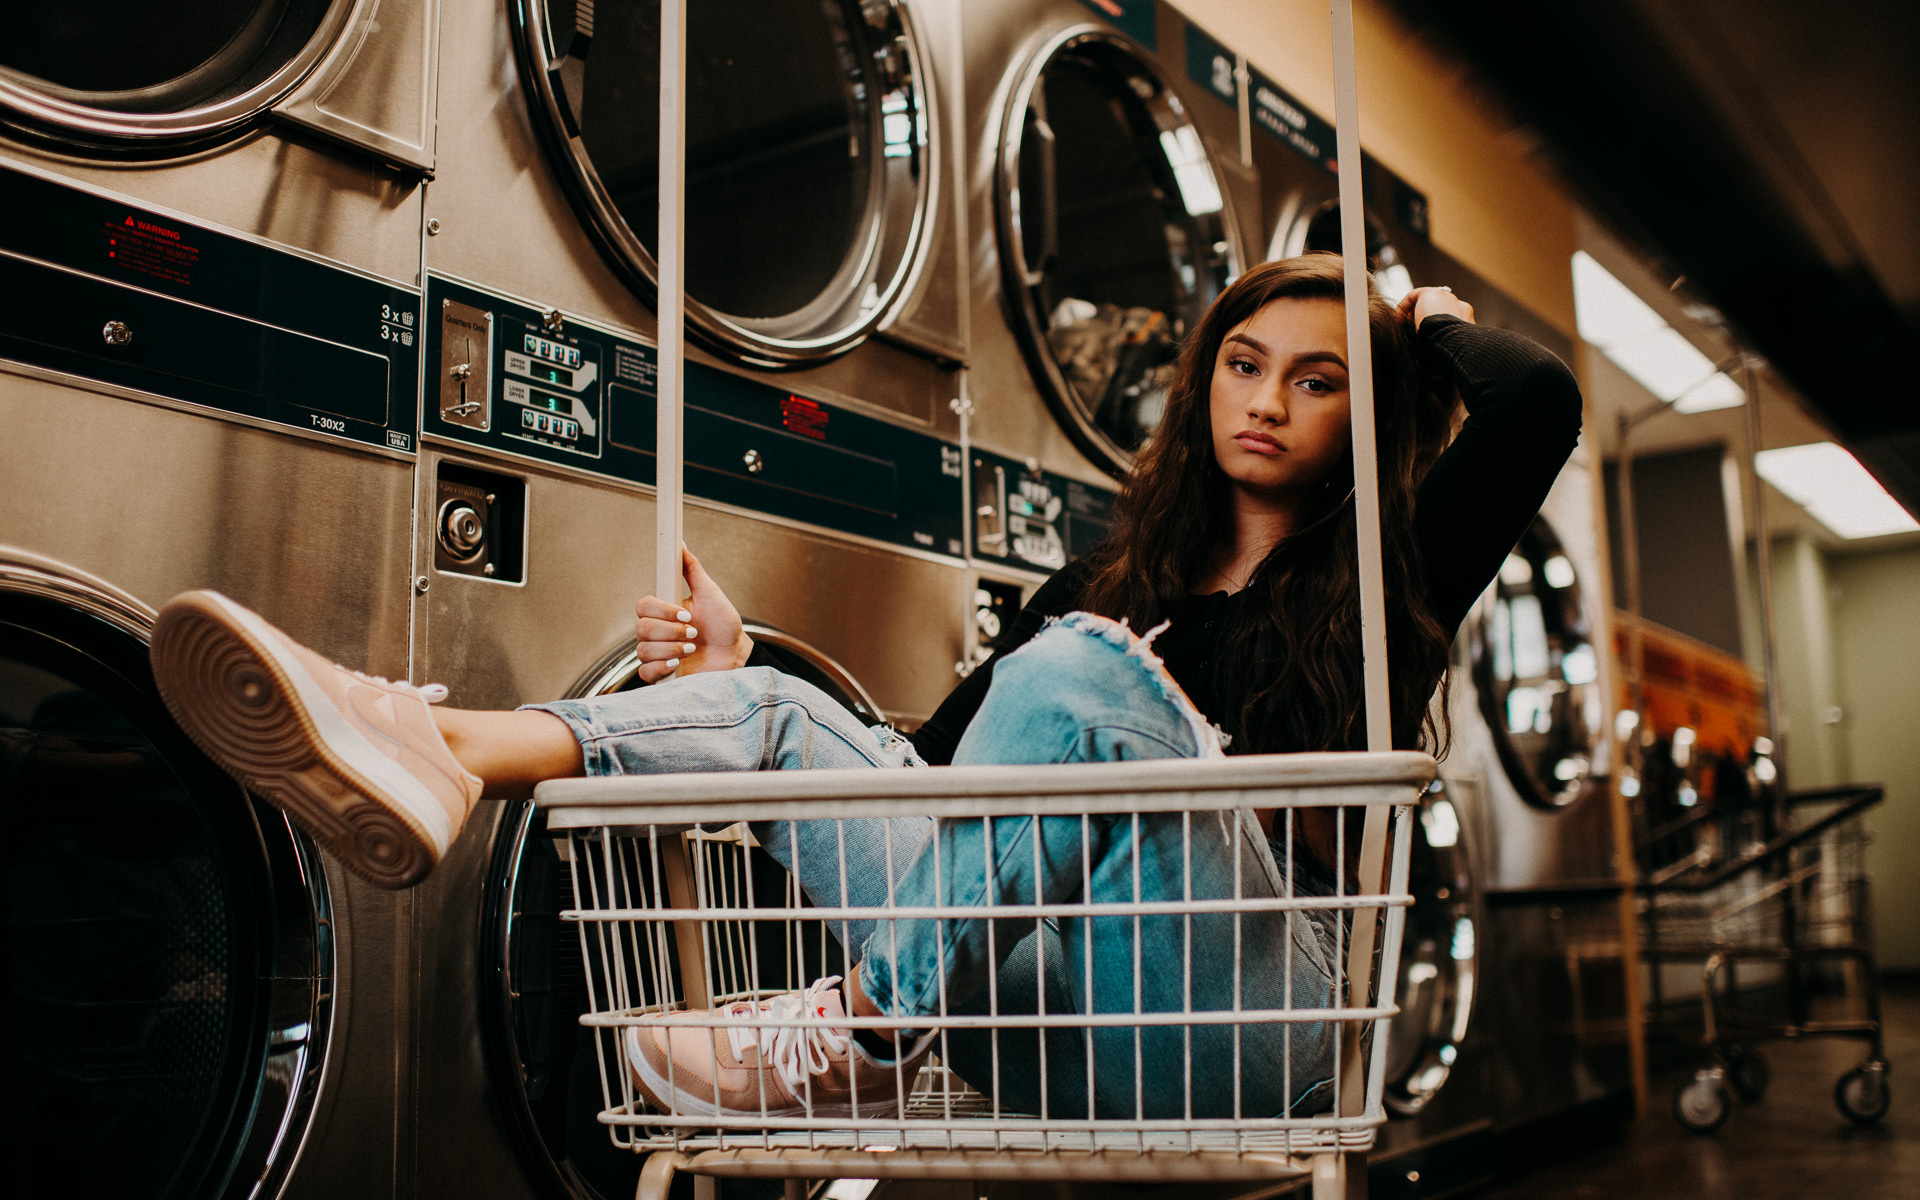 senior portrait in laundromat